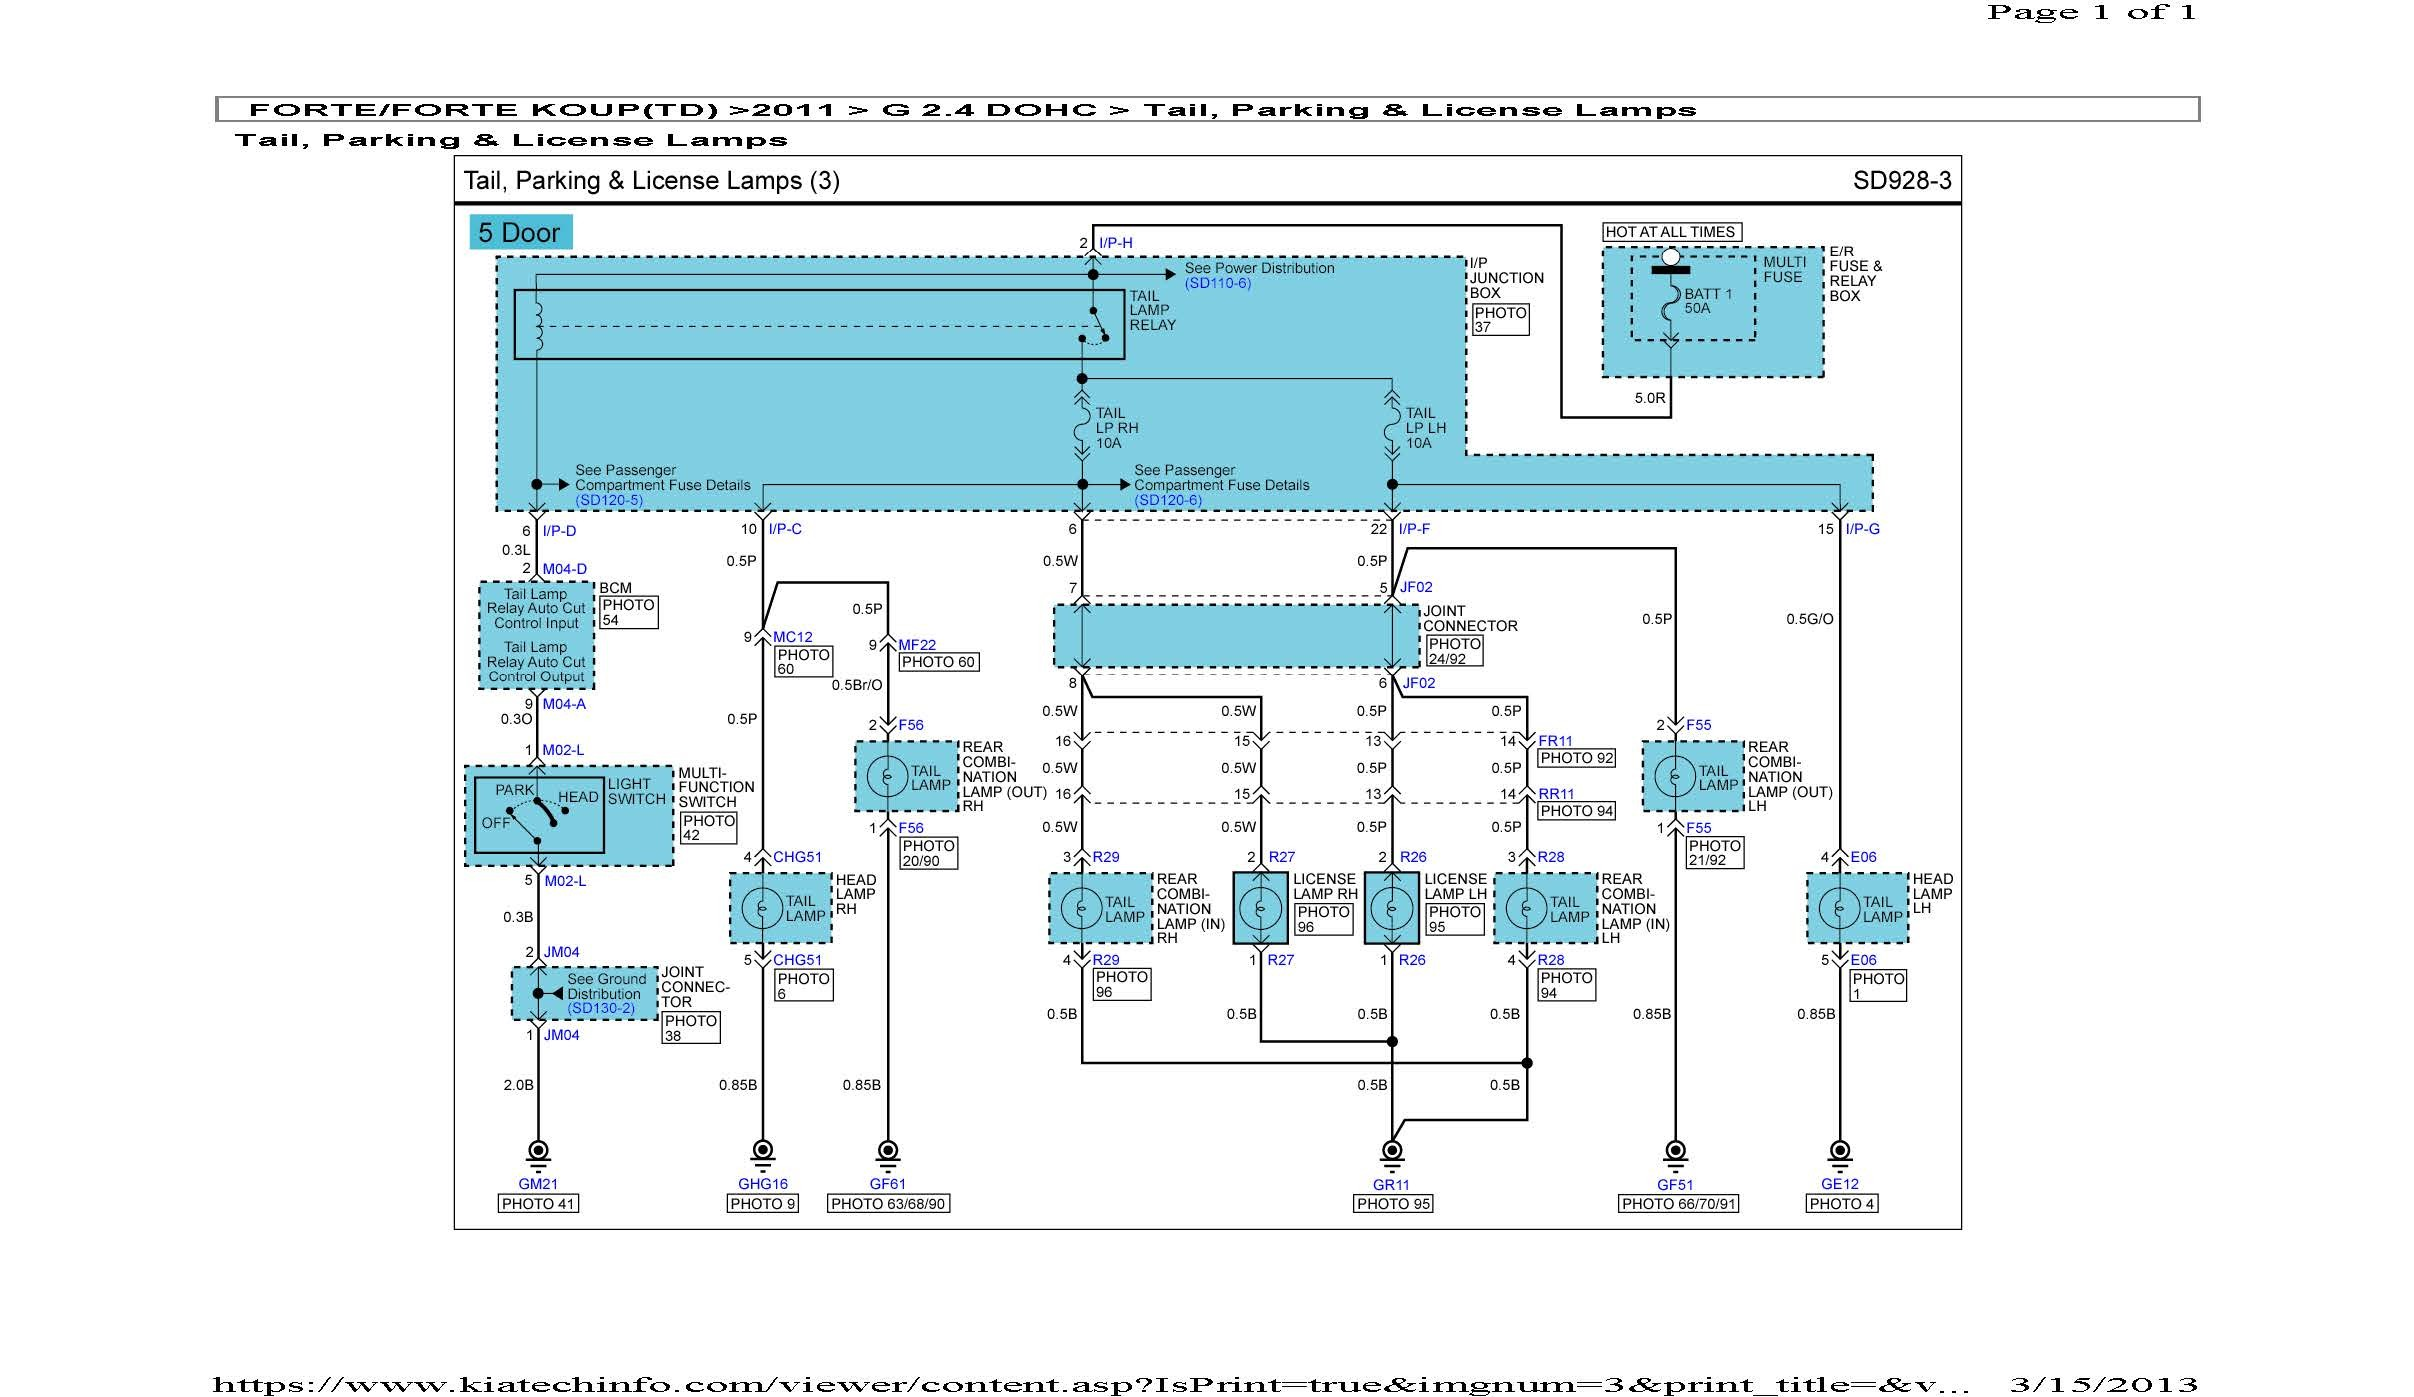 2004 Kia sorento Engine Diagram Electrical Wiring Kia so O Wiring ...